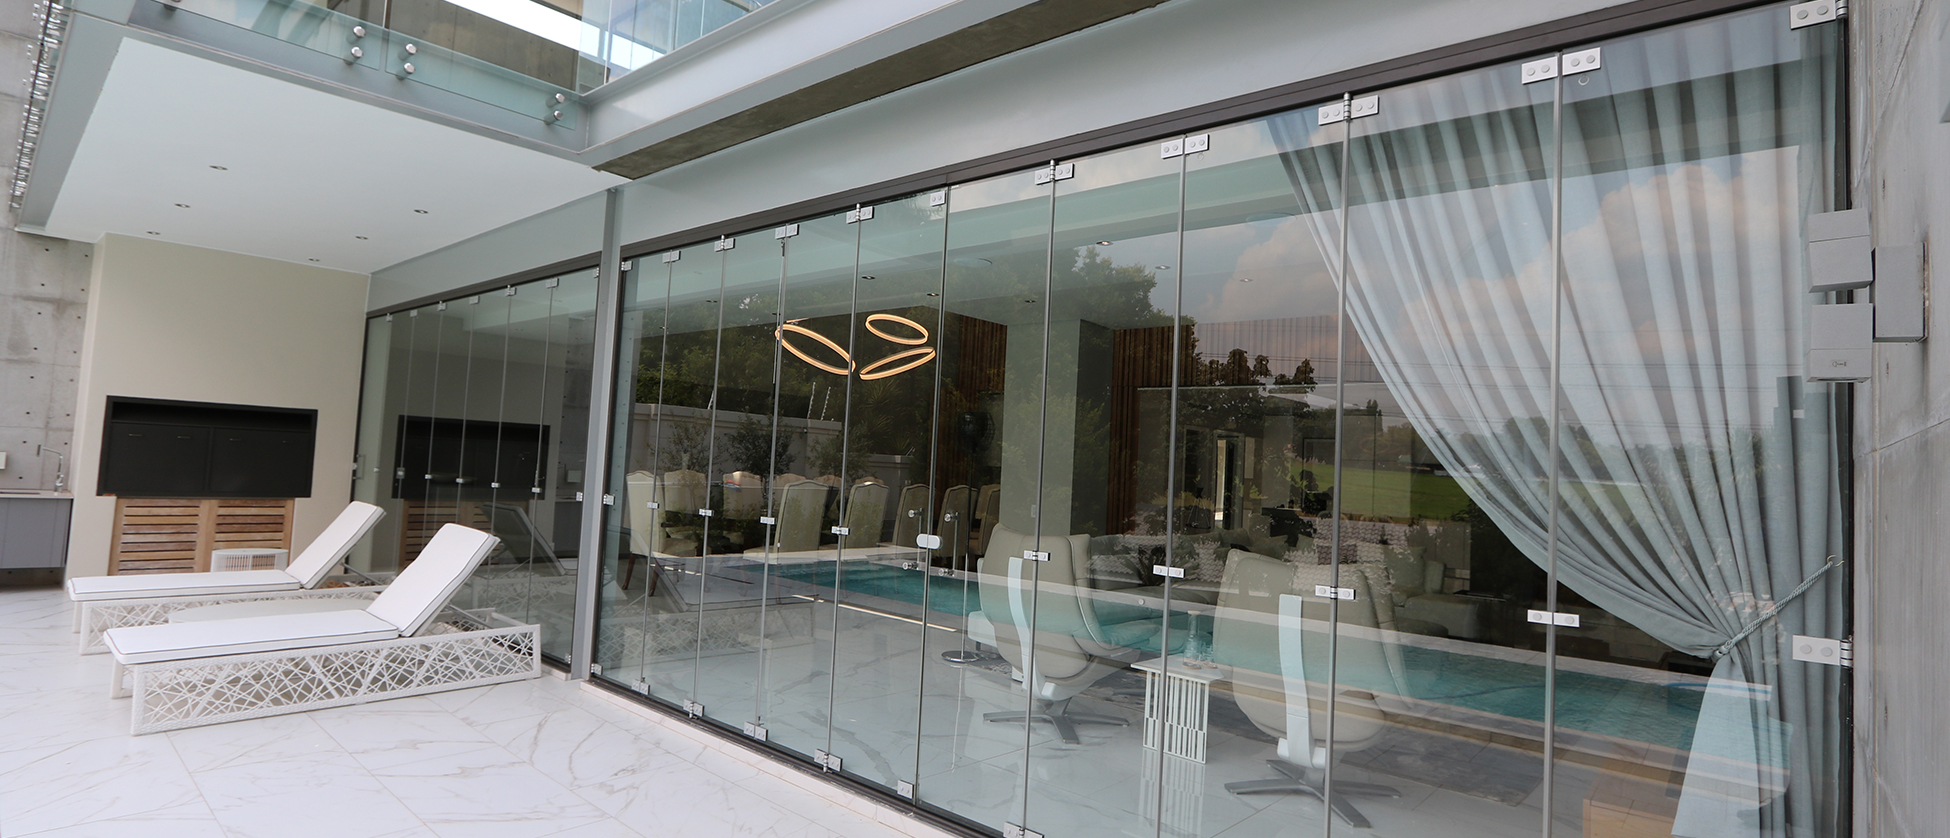 Majestic frameless glass doors